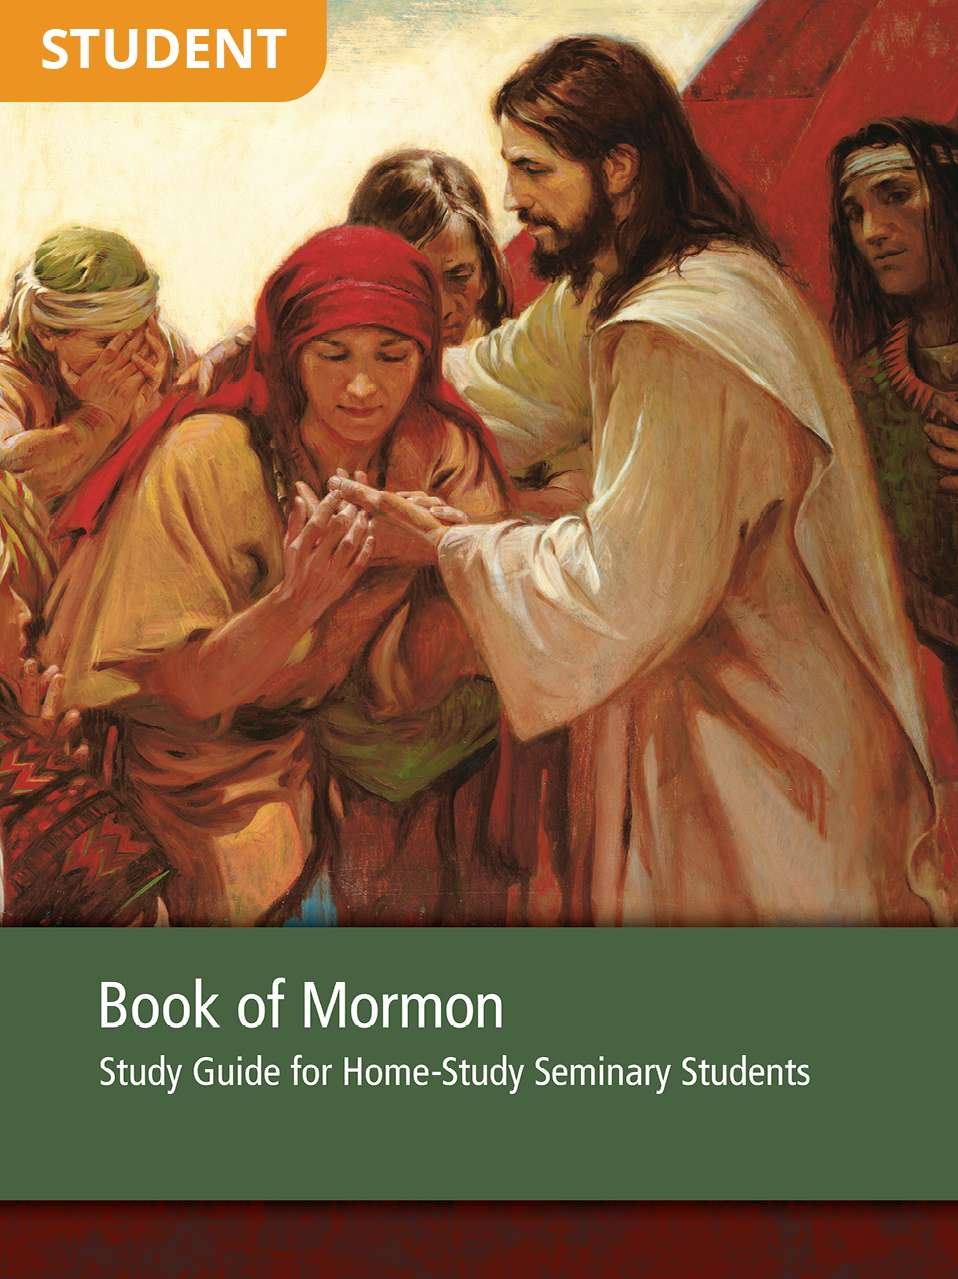 Book of Mormon Study Guide for Home-Study Seminary Students - 2013